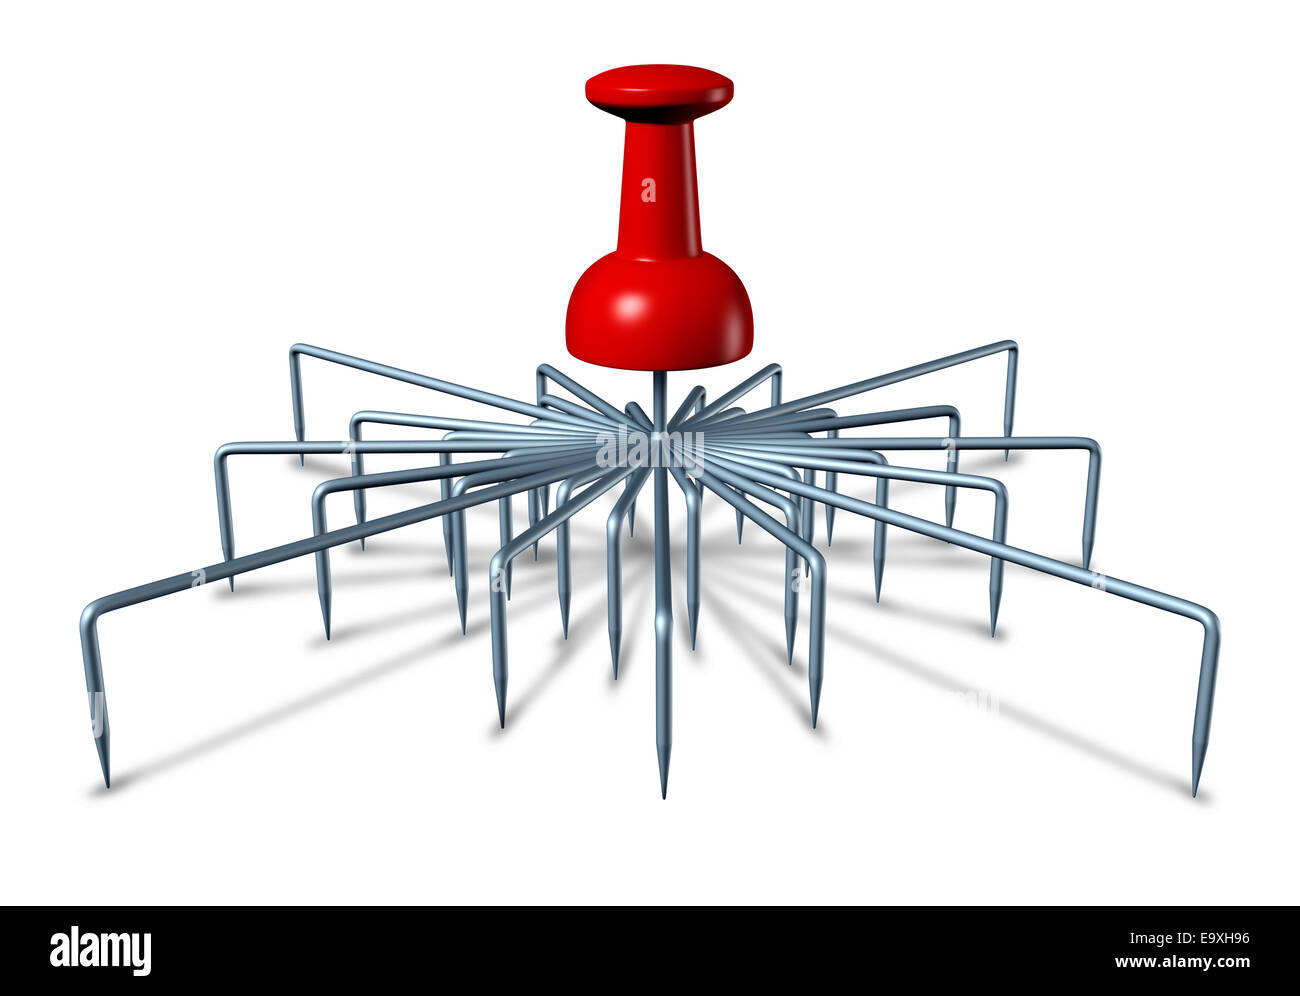 Cover all bases concept and taking advantage of multiple opportunities as a red office thumbtack pin object with - Stock Image